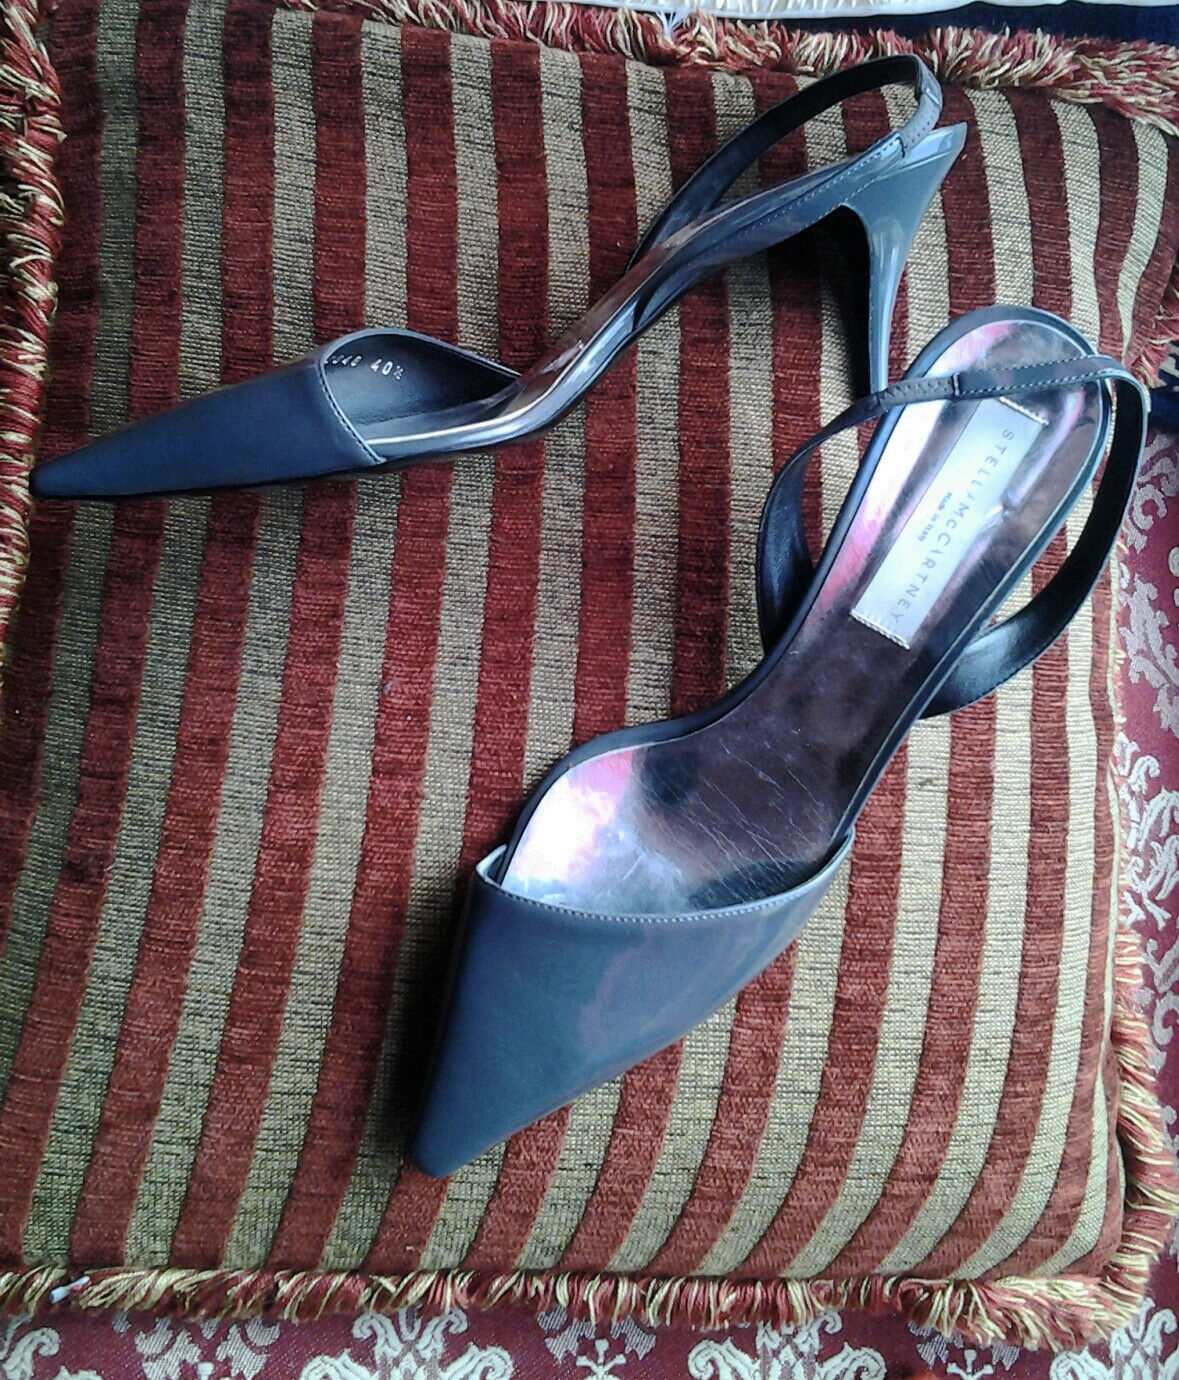 Stella McCartney Grey Patent Vegan Slingback Heels sz 7 40EU X-mas (at) Work